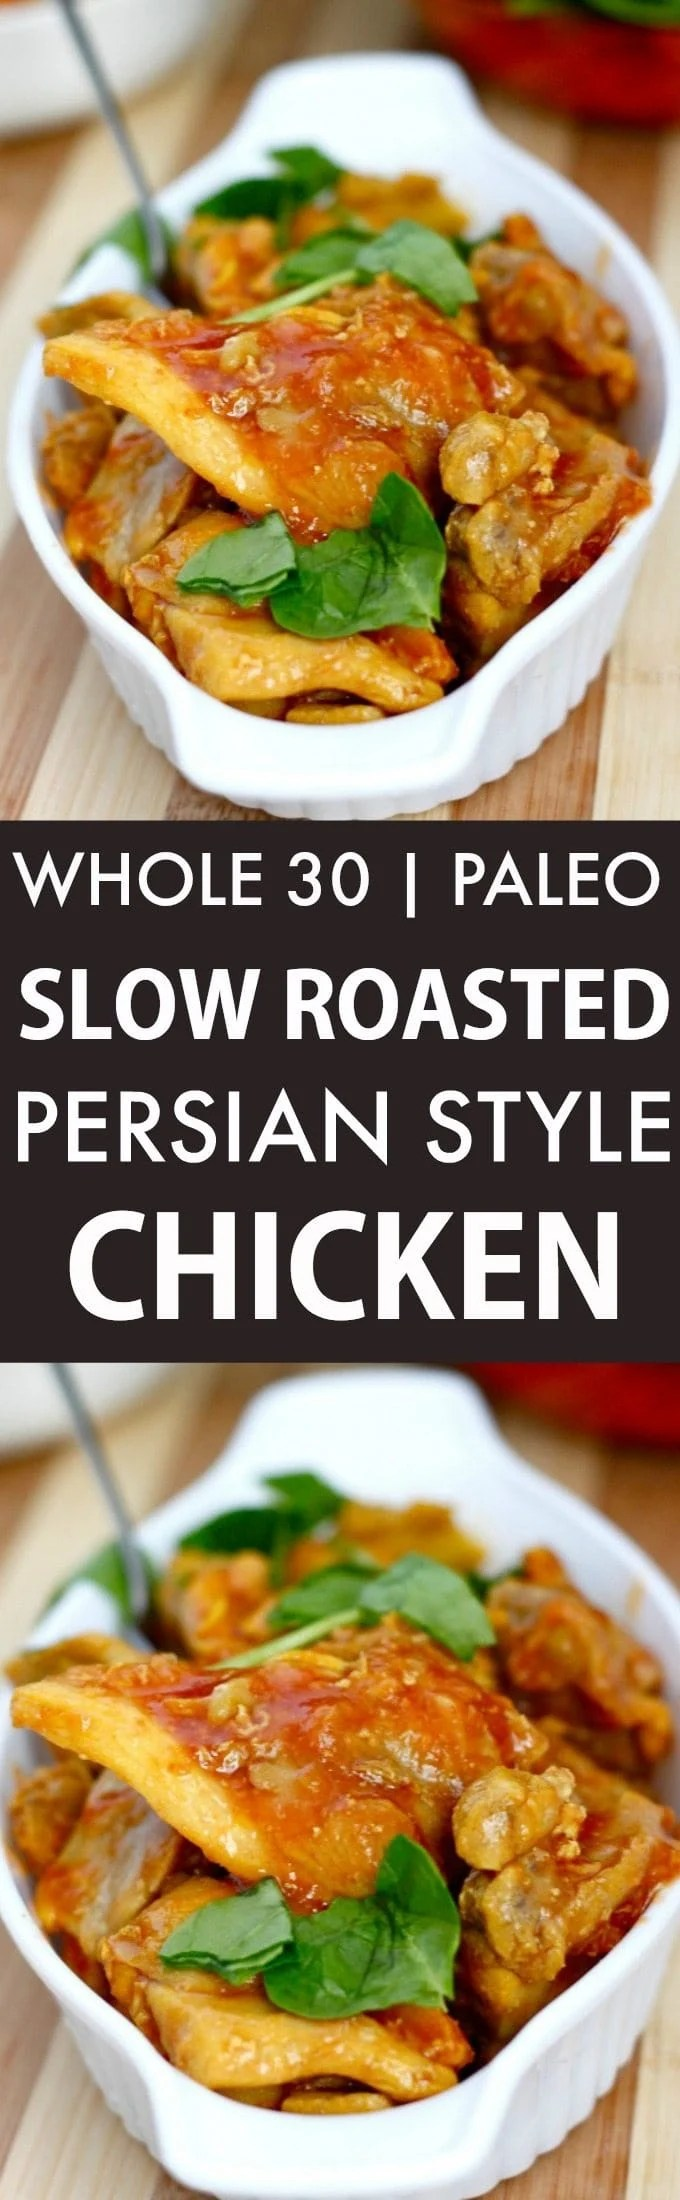 Slow Roasted Persian Chicken (Whole 30, Paleo, GF)- Whole30 Friendly juicy, moist and EASY Persian style chicken perfect for a low carb, high protein and flavorful meal- Lunch, dinner and freezer friendly! {paleo, gluten free, whole30}- thebigmansworld.com